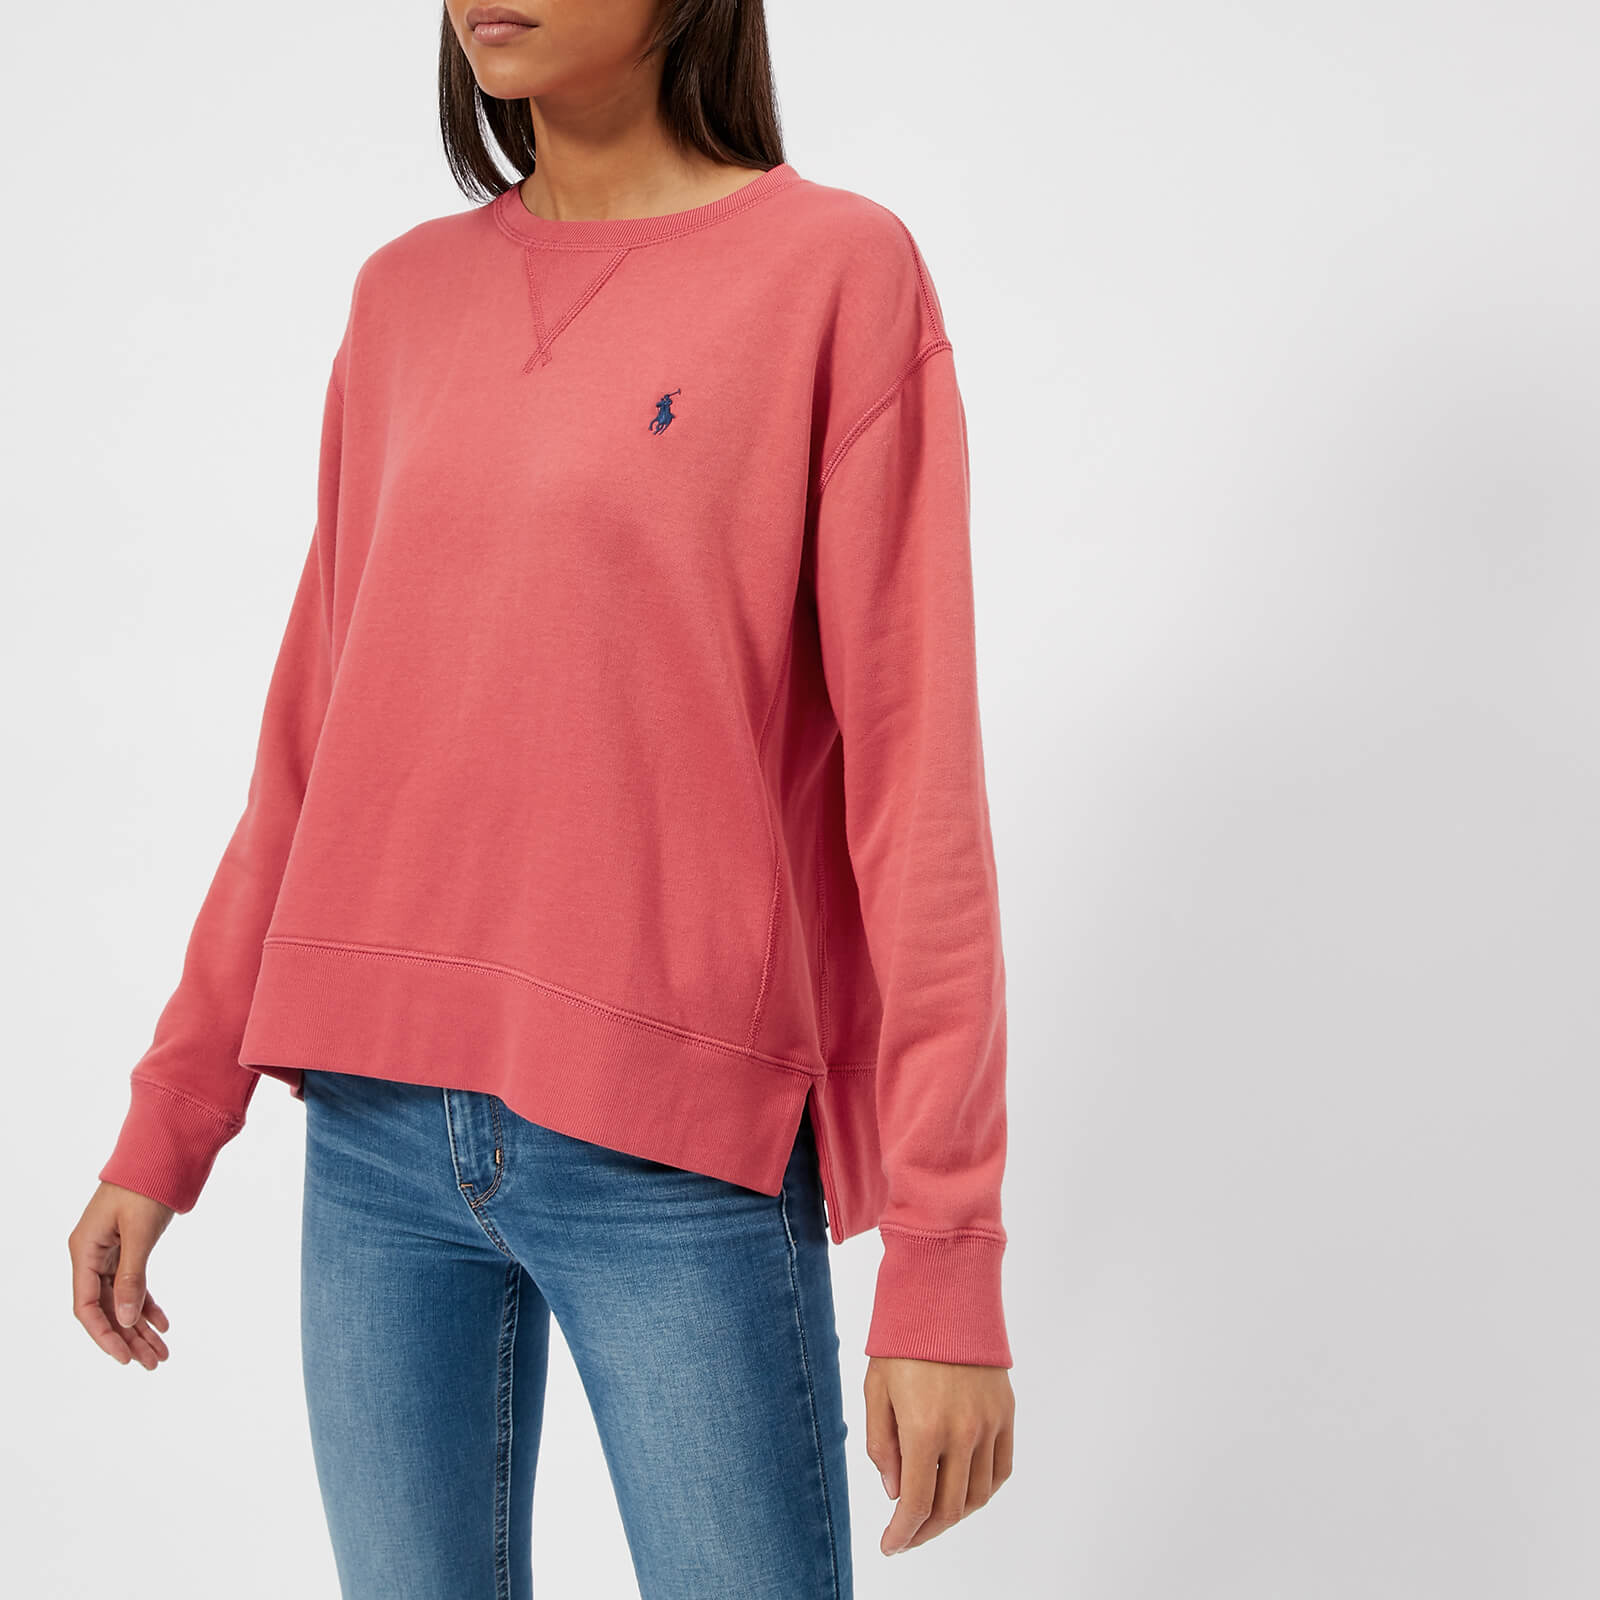 6647b88c2ff9a Polo Ralph Lauren Women s Logo Sweatshirt - Sun Red - Free UK Delivery over  £50